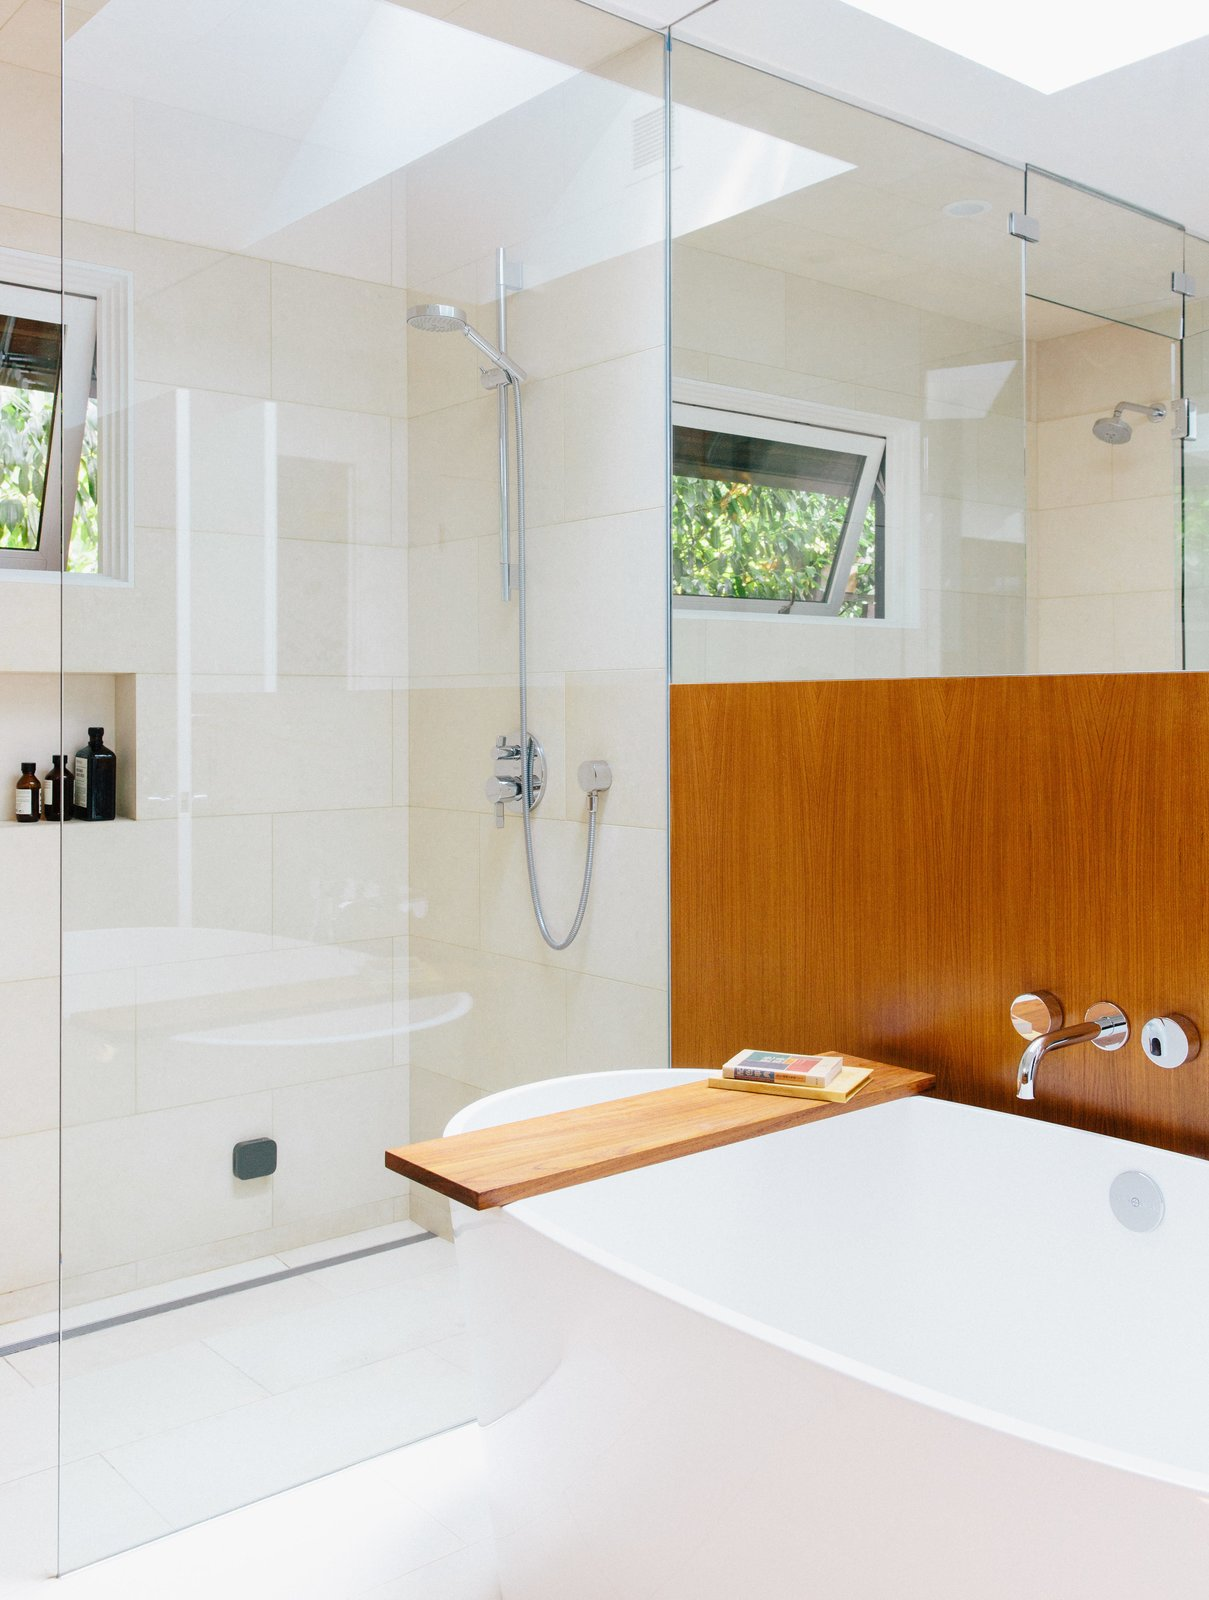 Bath Room and Freestanding Tub The master bath is a bright sanctuary with a freestanding tub by Victoria + Albert and Ecostat shower fixtures by Hansgrohe.  Best Photos from Wood Paneling Loses its Dated Reputation with This Renovation of a 1959 Portland Gem